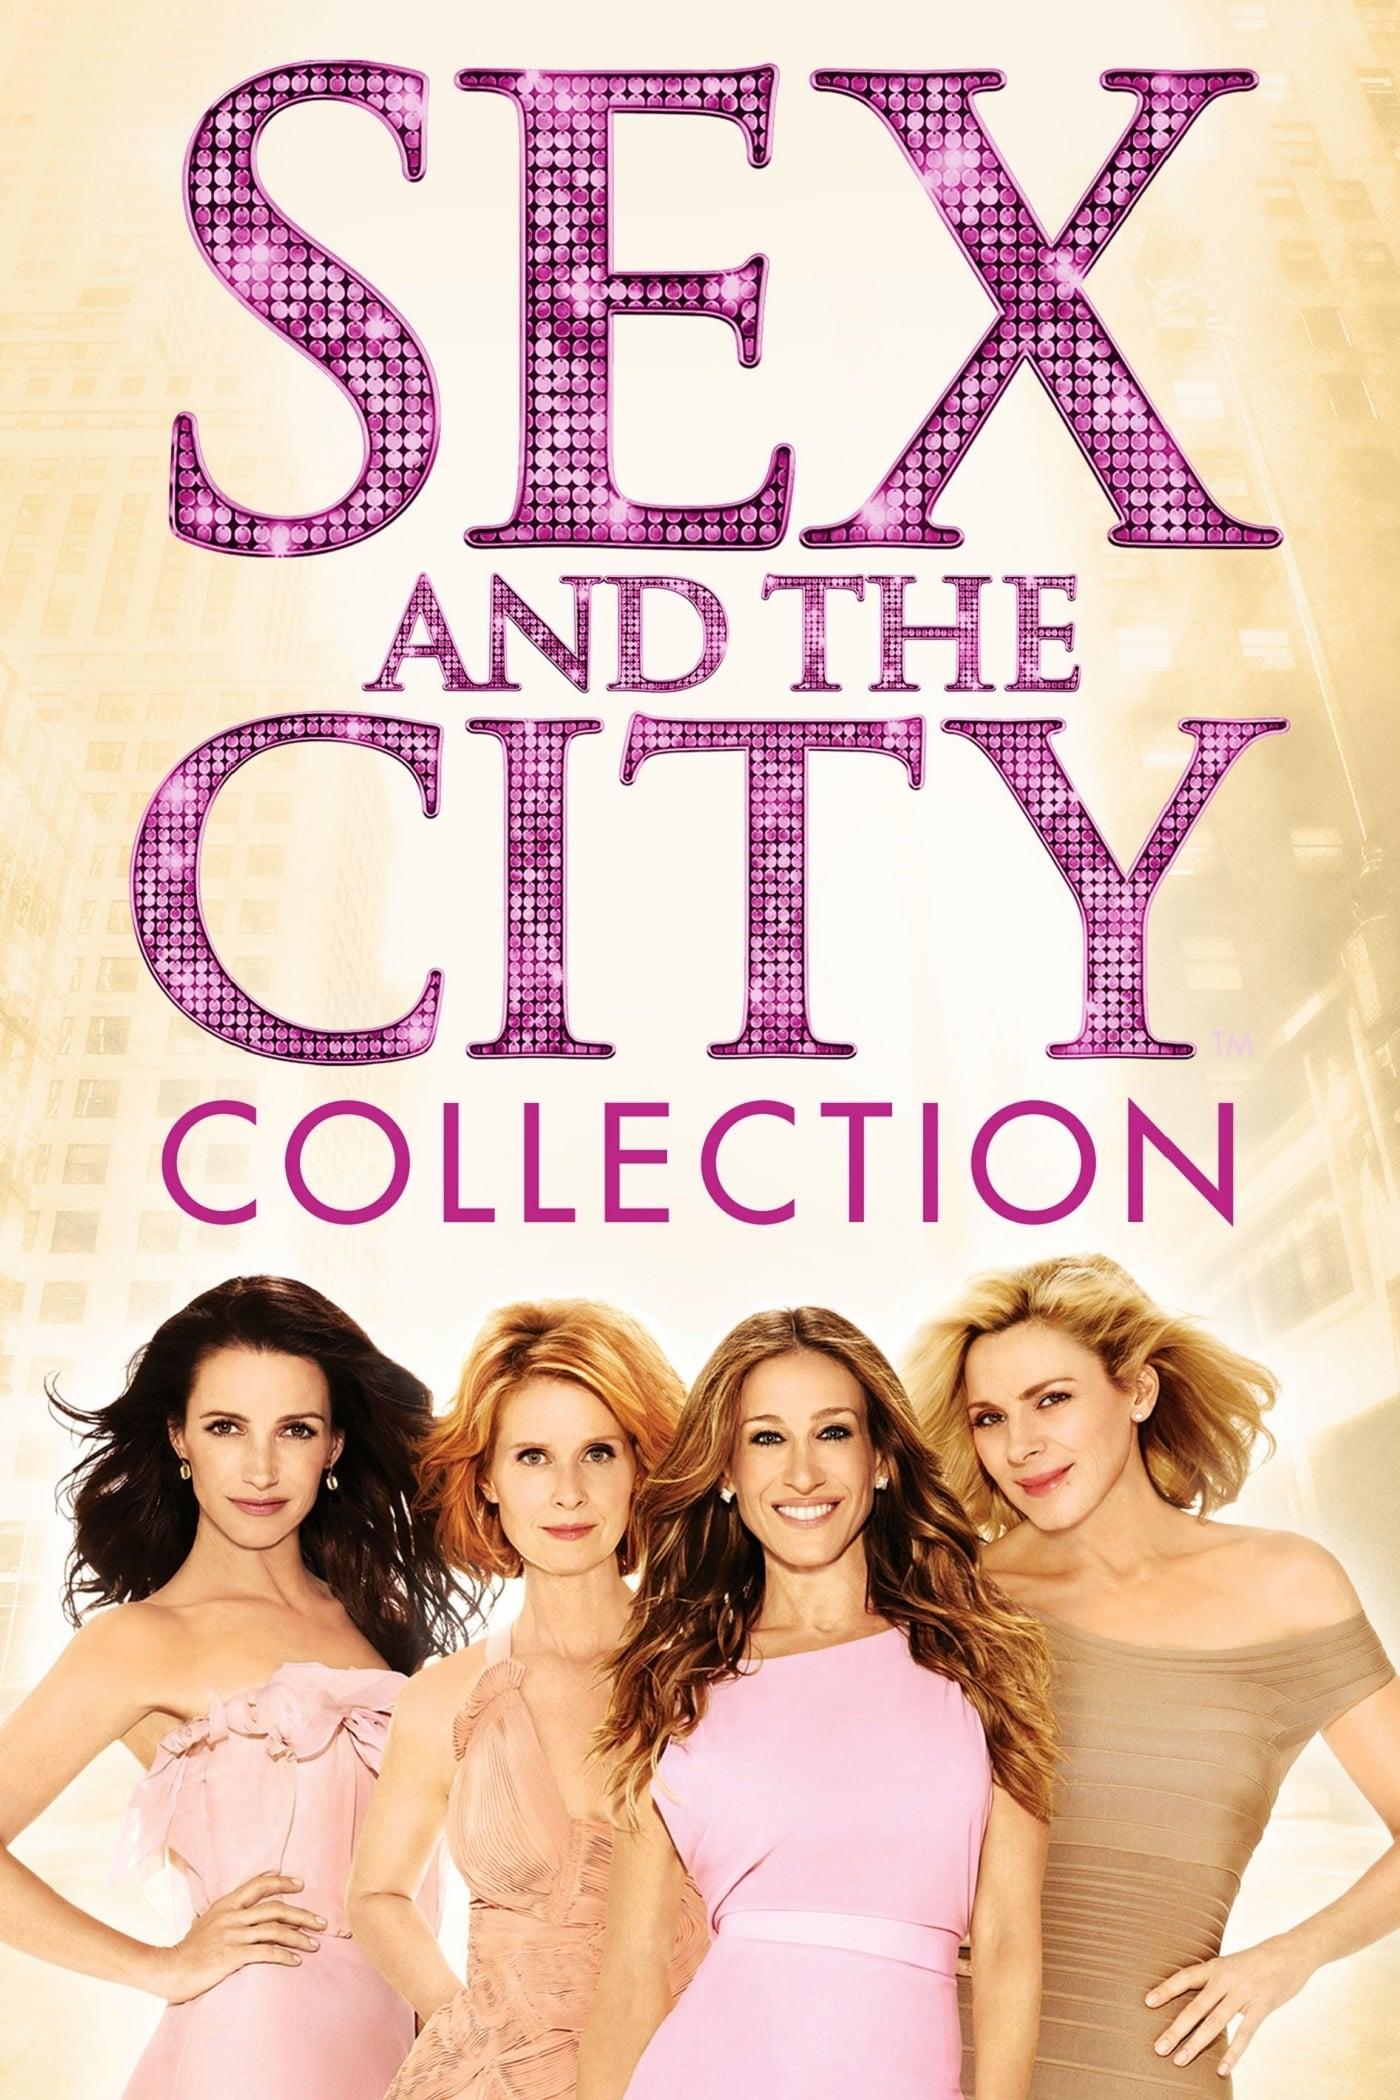 Movies like sex and the city